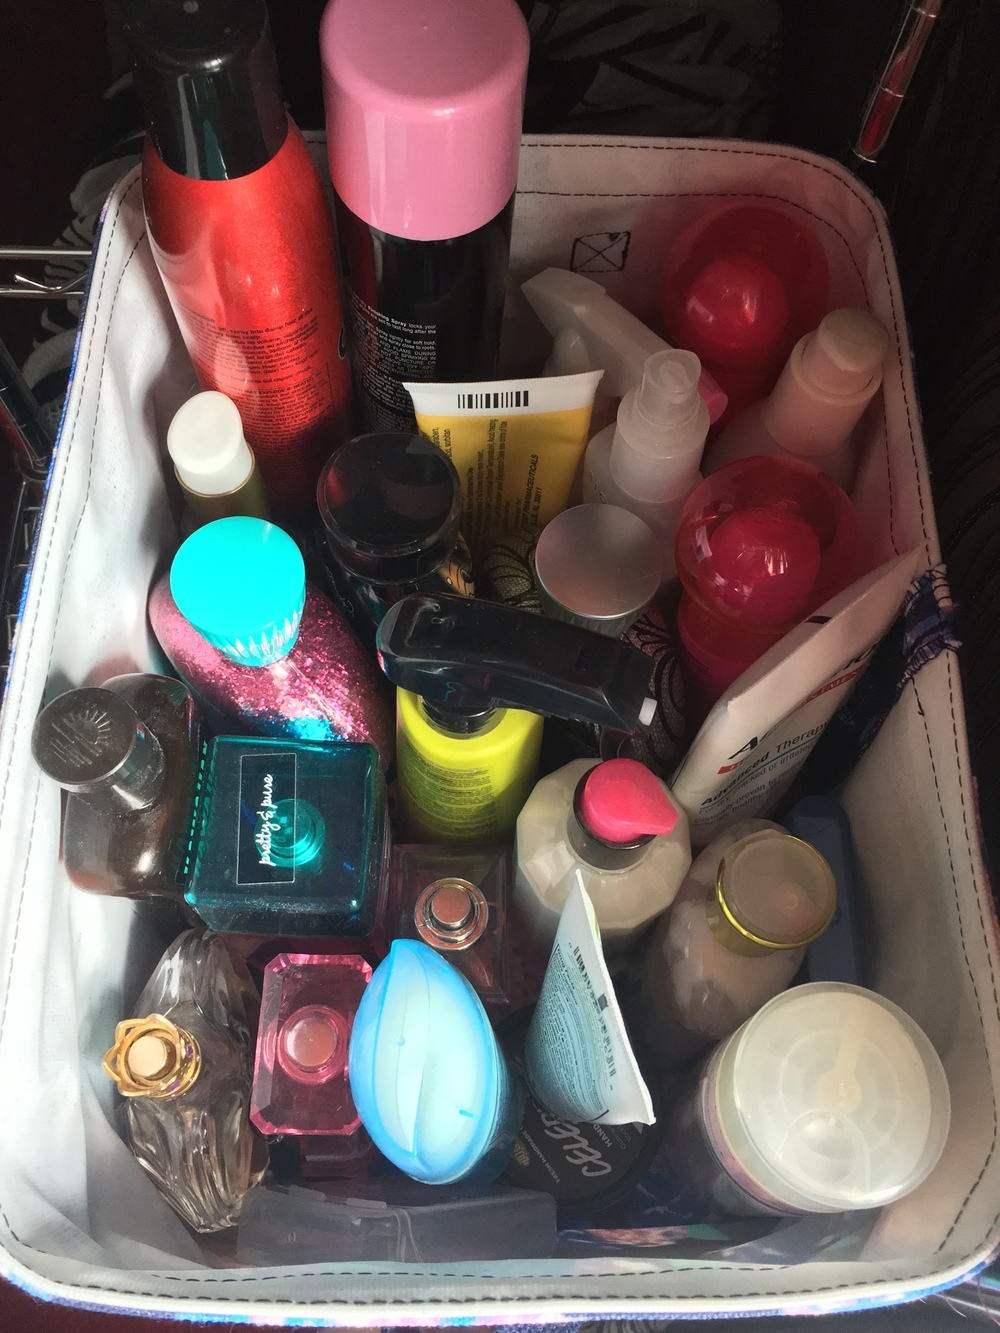 I keep all of my hair products,lotions, perfumes, and deodorant in a cute floral basket. I used to have them all out and standing on the shelf, but I thought it looked a little messy so putting them all into this little basket helped keep everything together and looking nice.